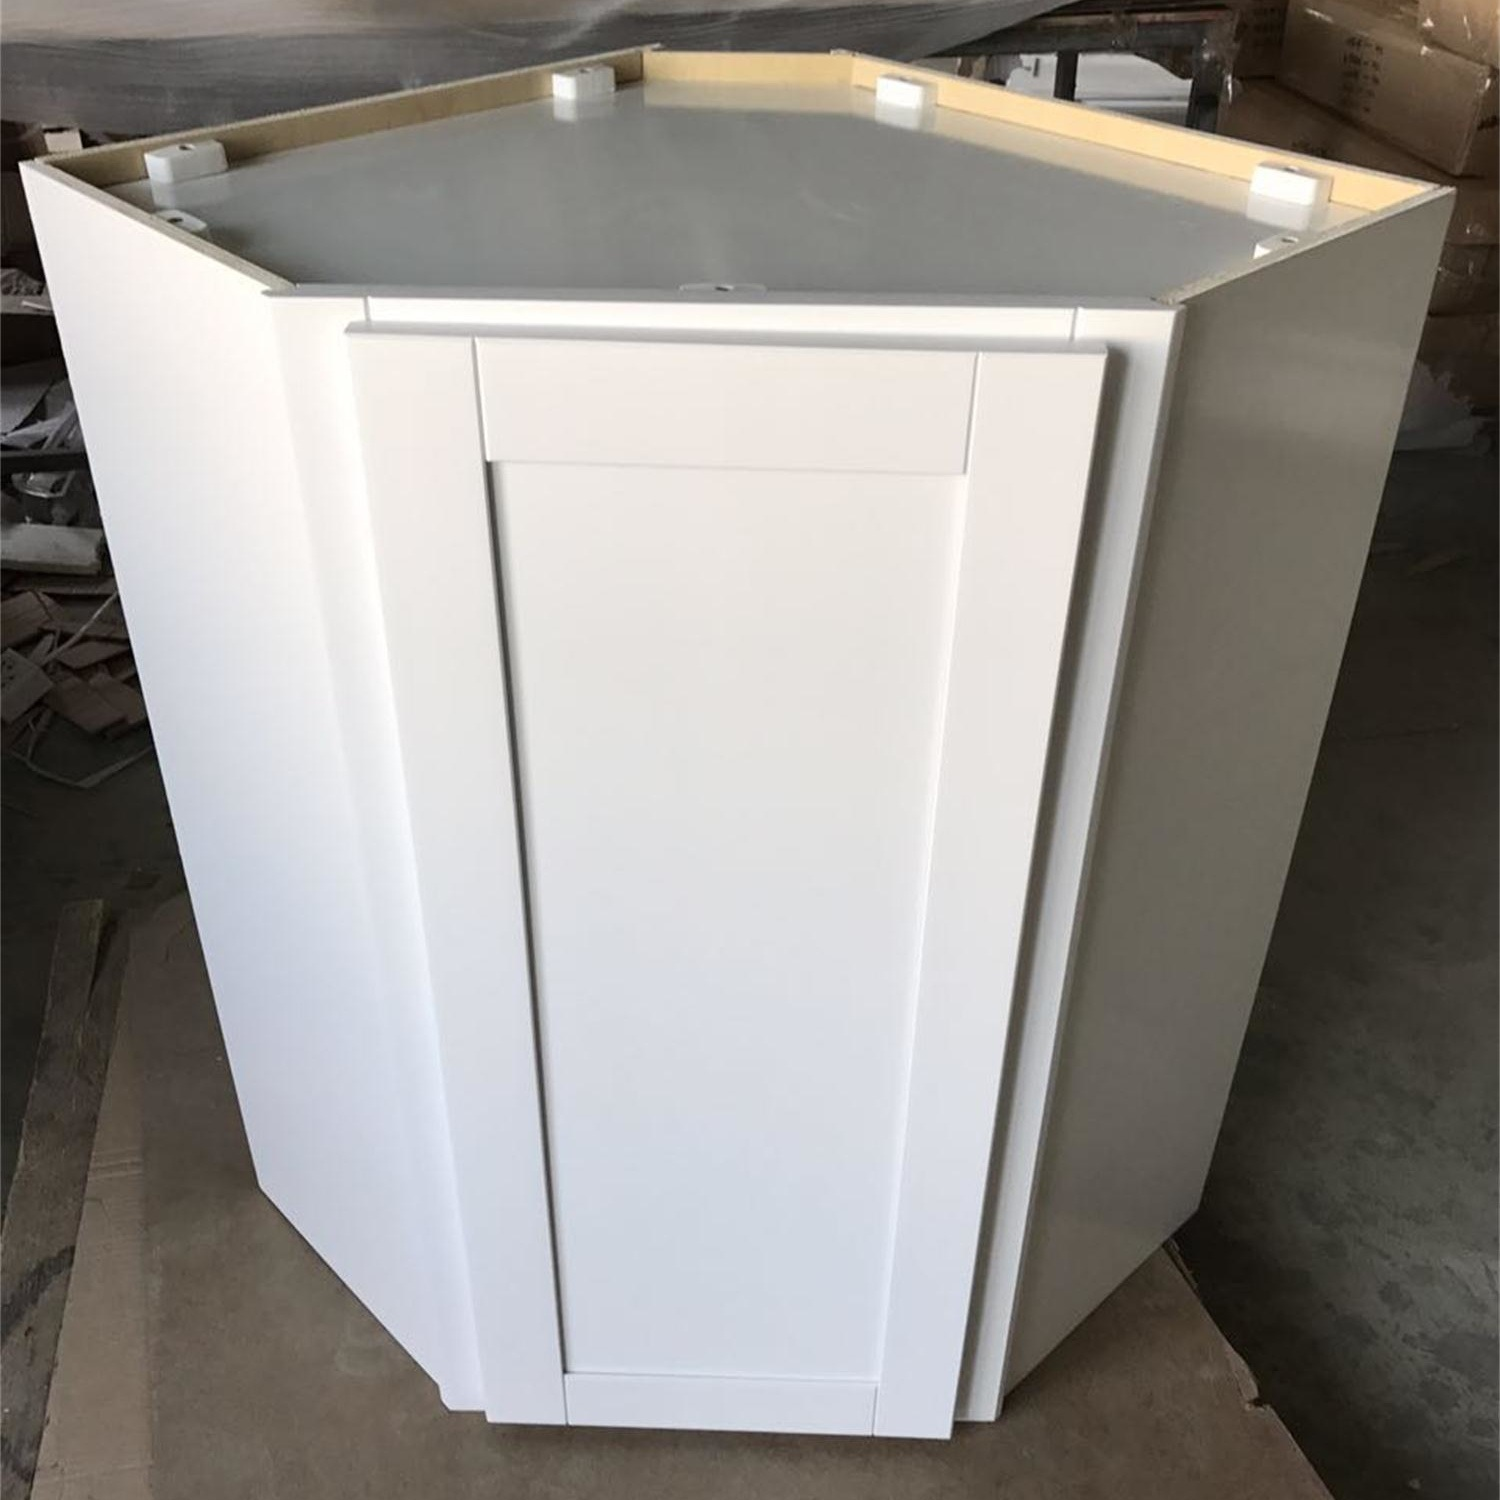 White Solid Wood Ready to Assemble Kitchen Cabinets on Sale